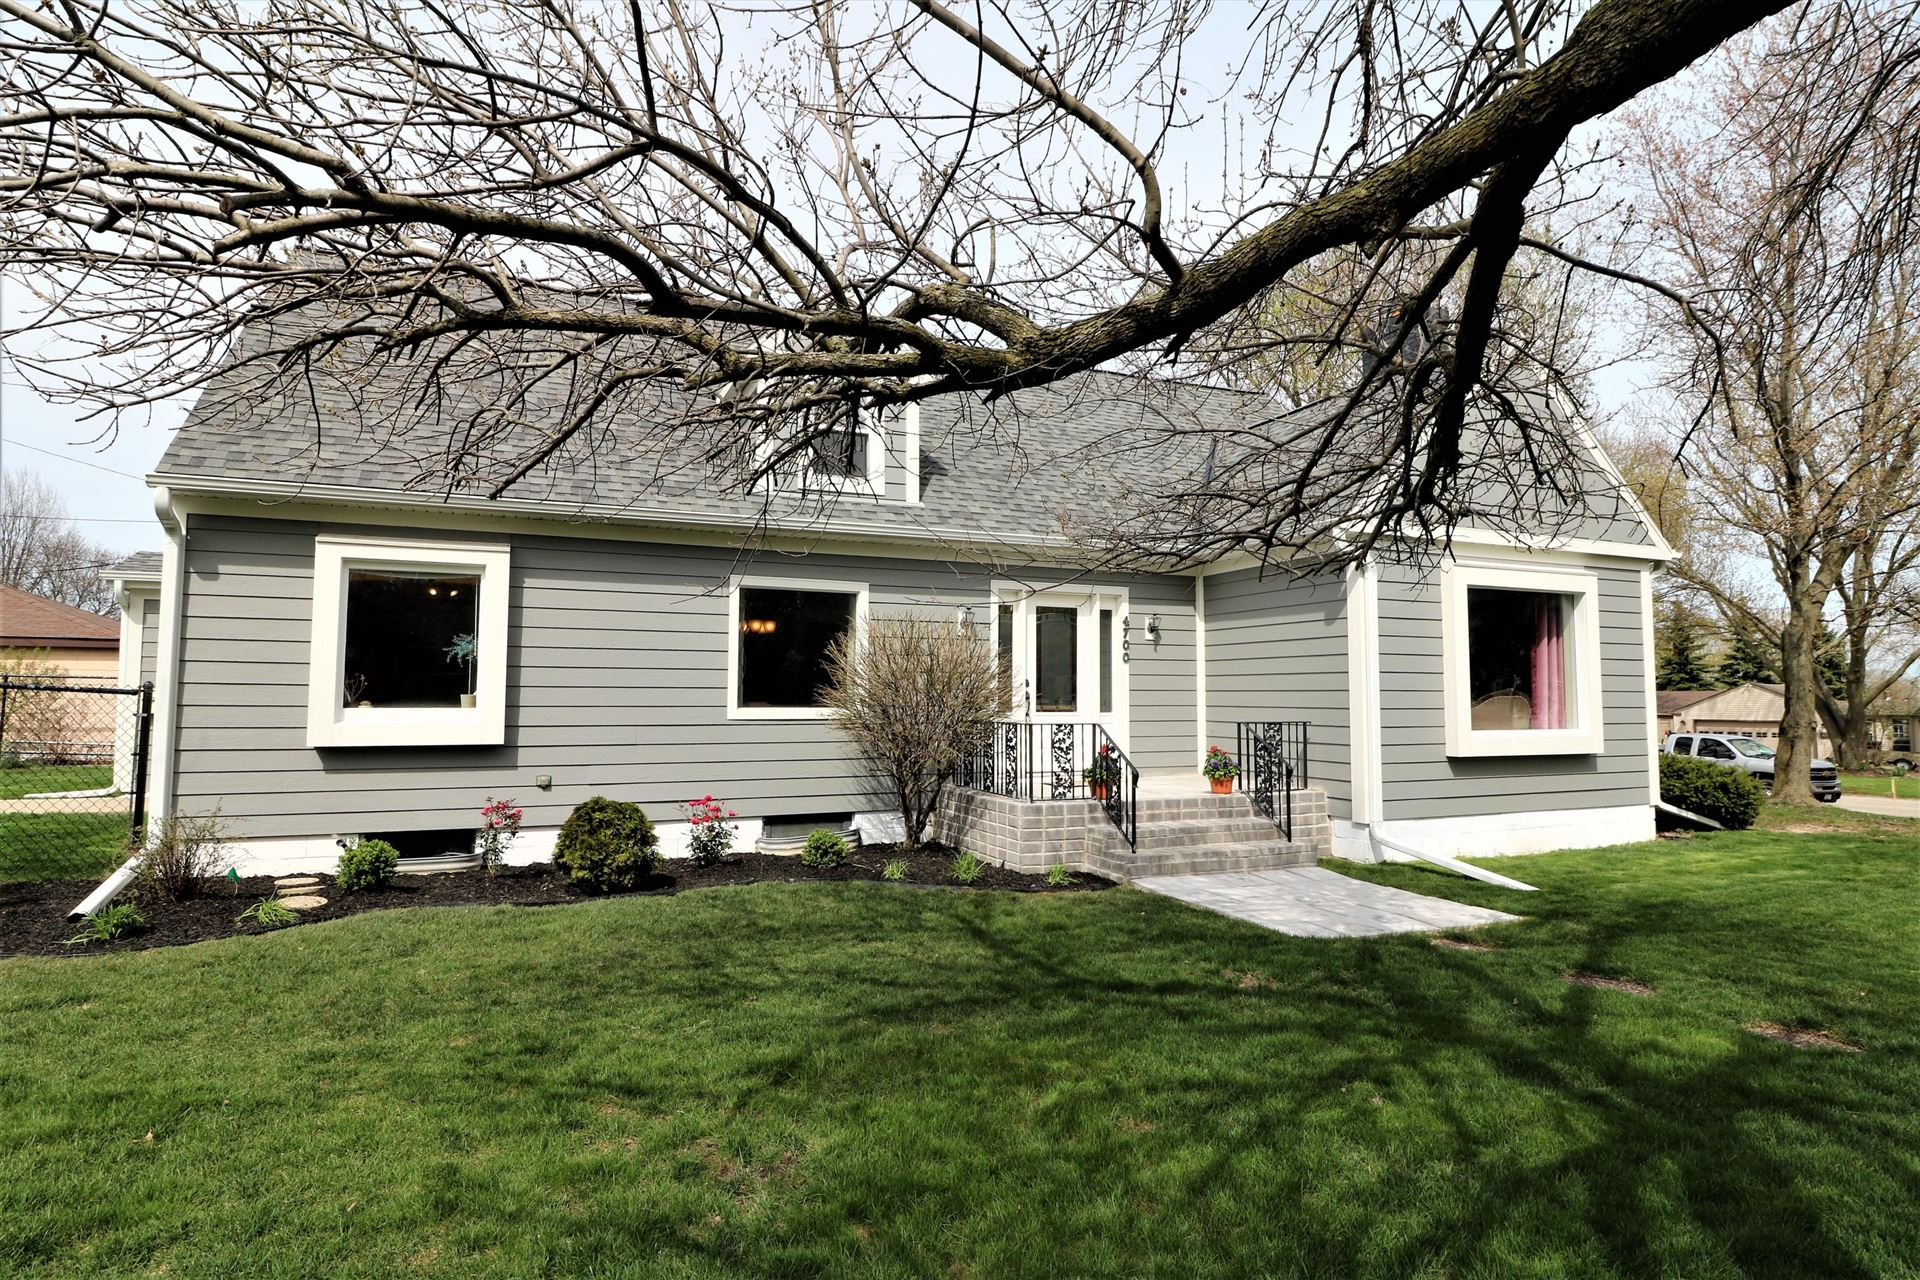 4700 W St Francis Ave, Greenfield, WI 53220 - #: 1691280